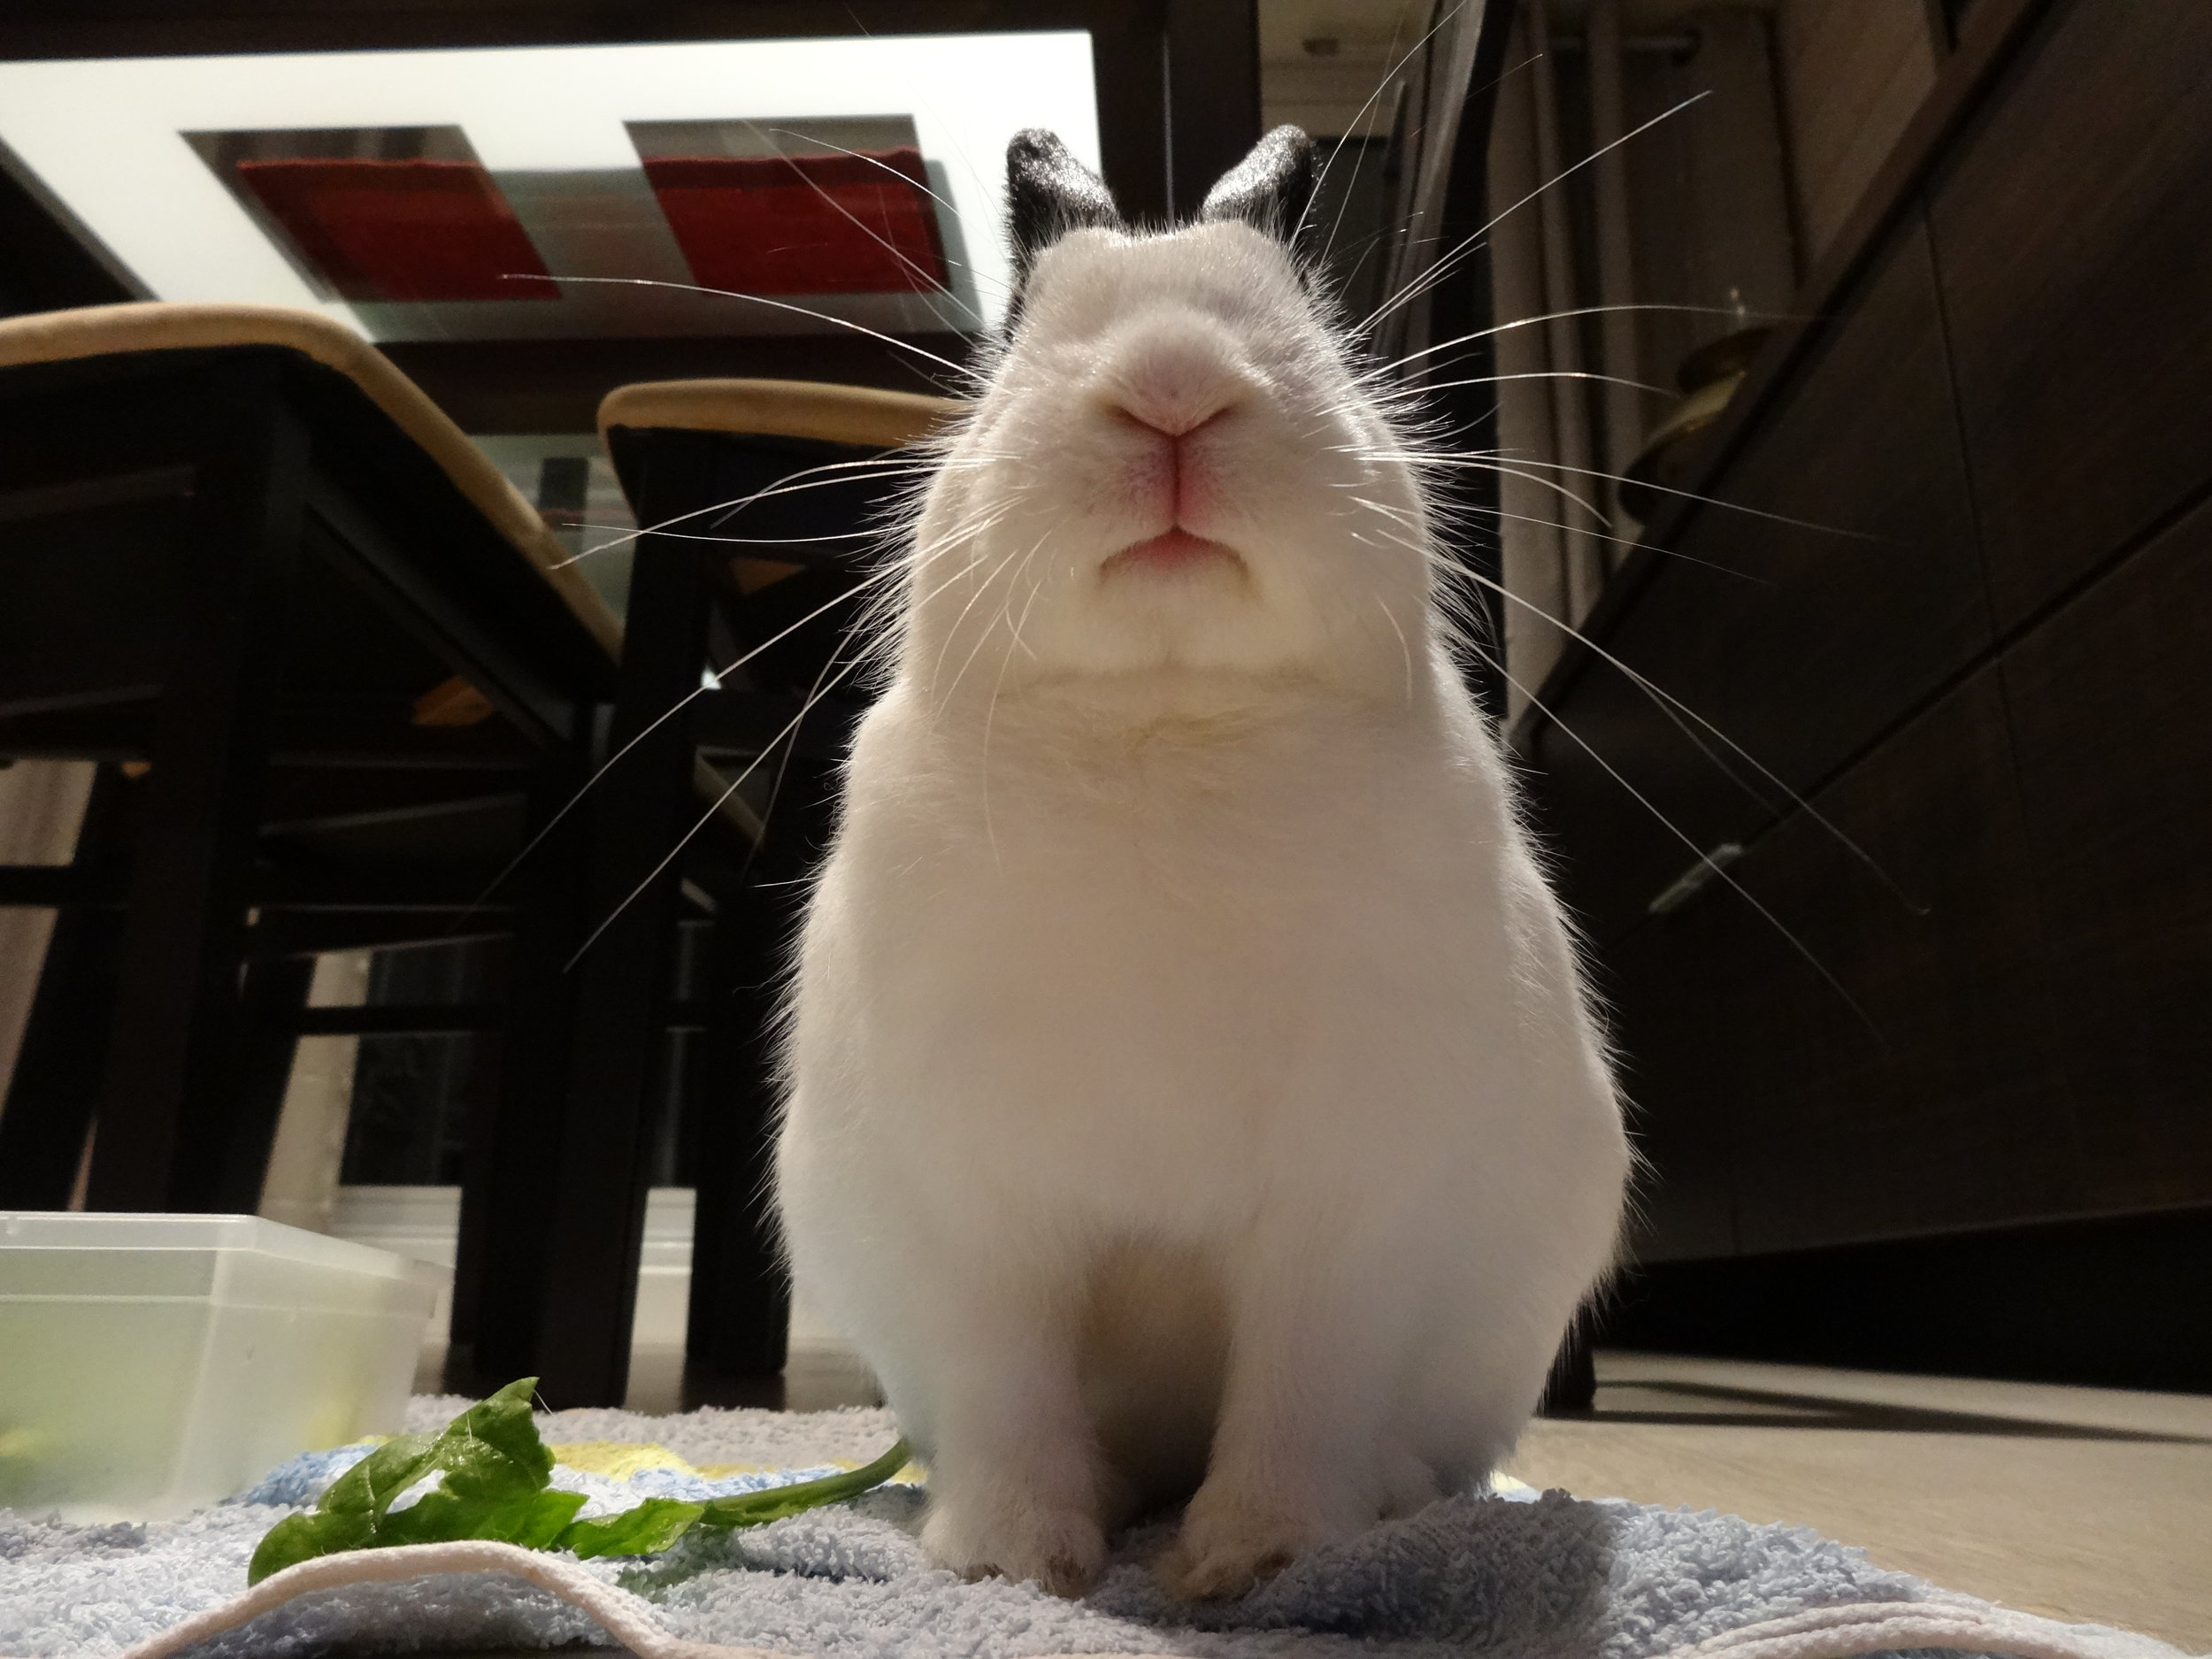 Bunny Disapproves of These Sparse Offerings